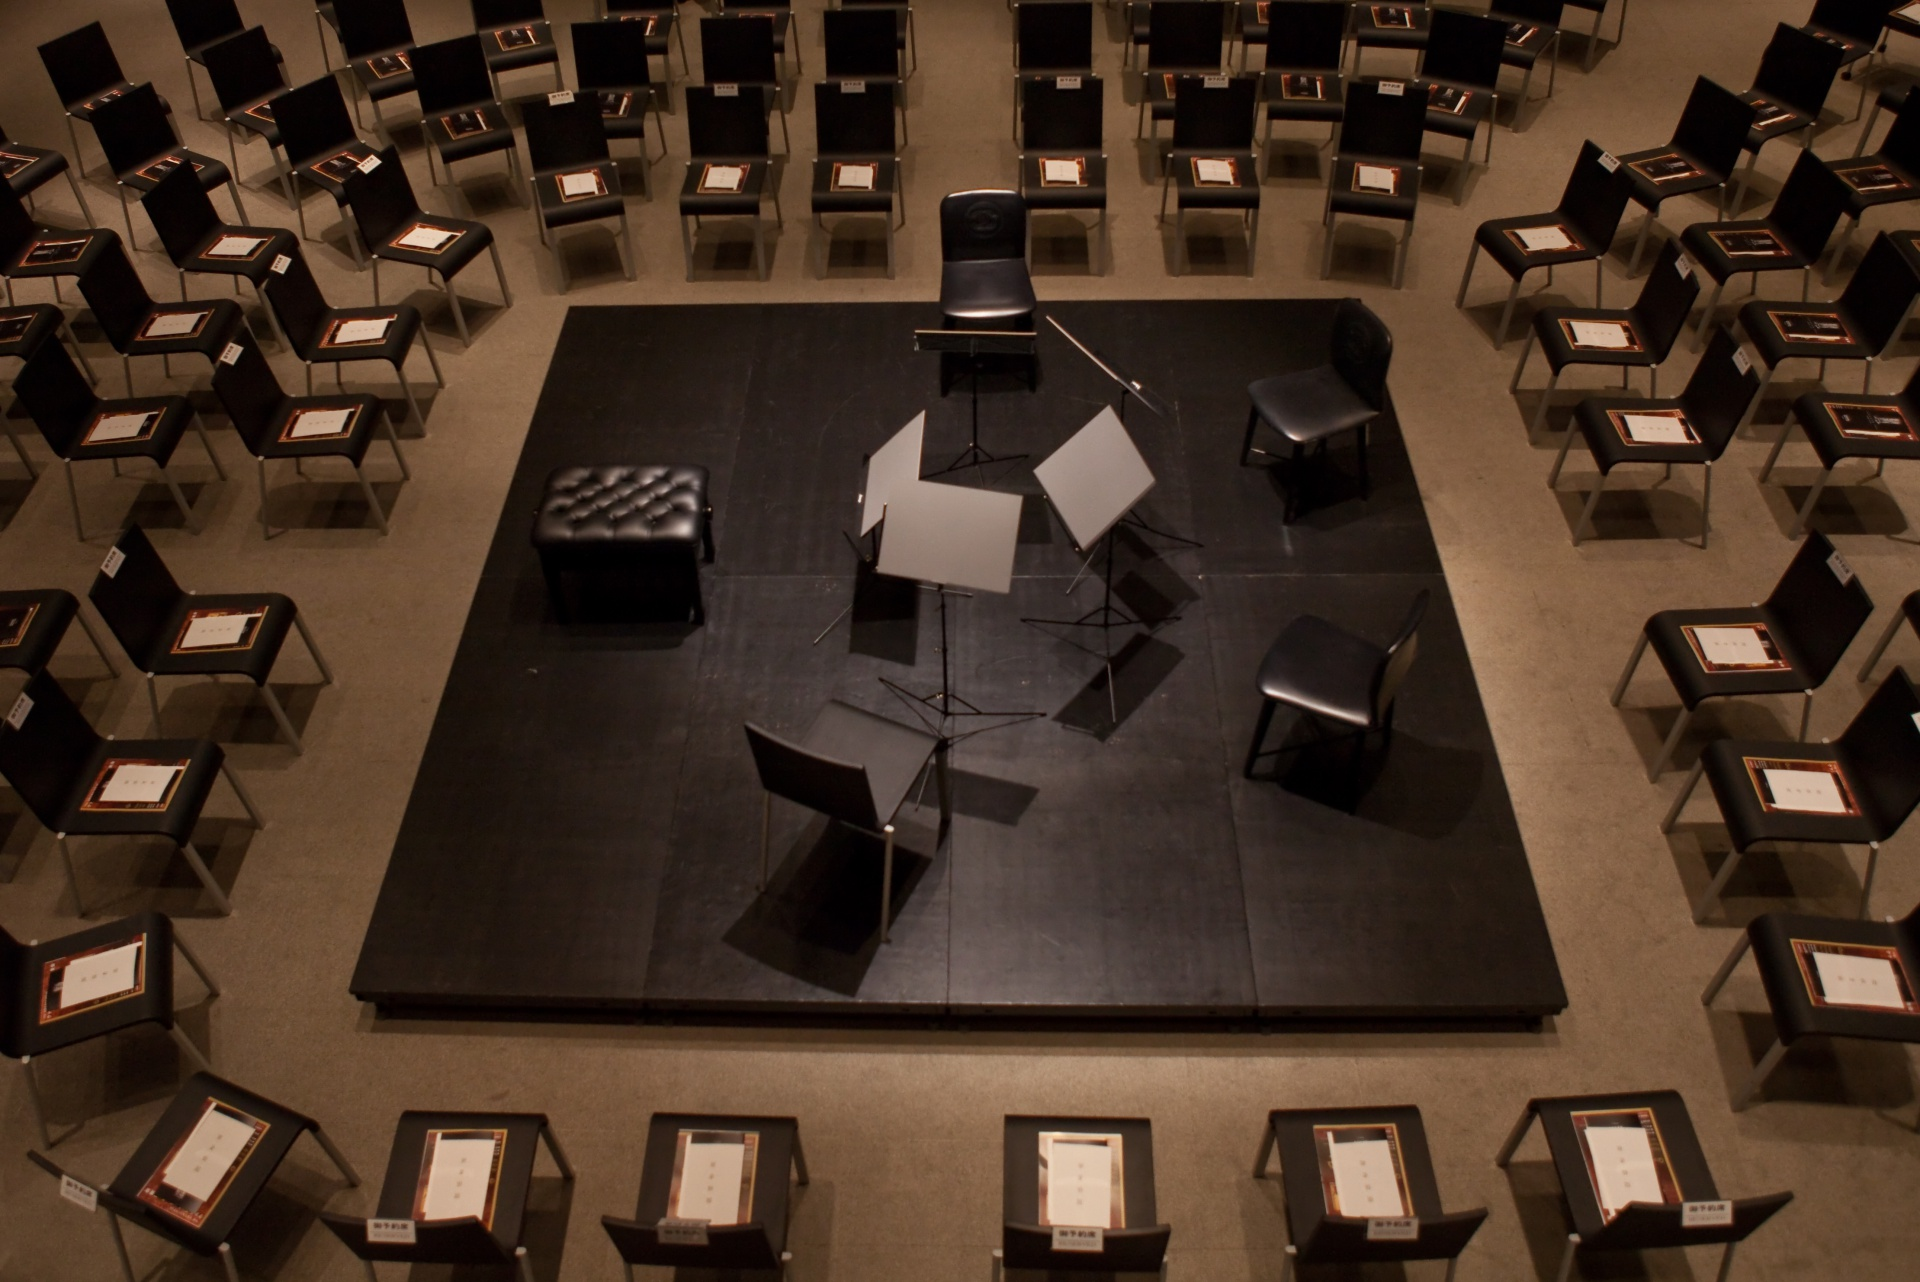 CHANEL Pygmalion Days Chamber Music Series